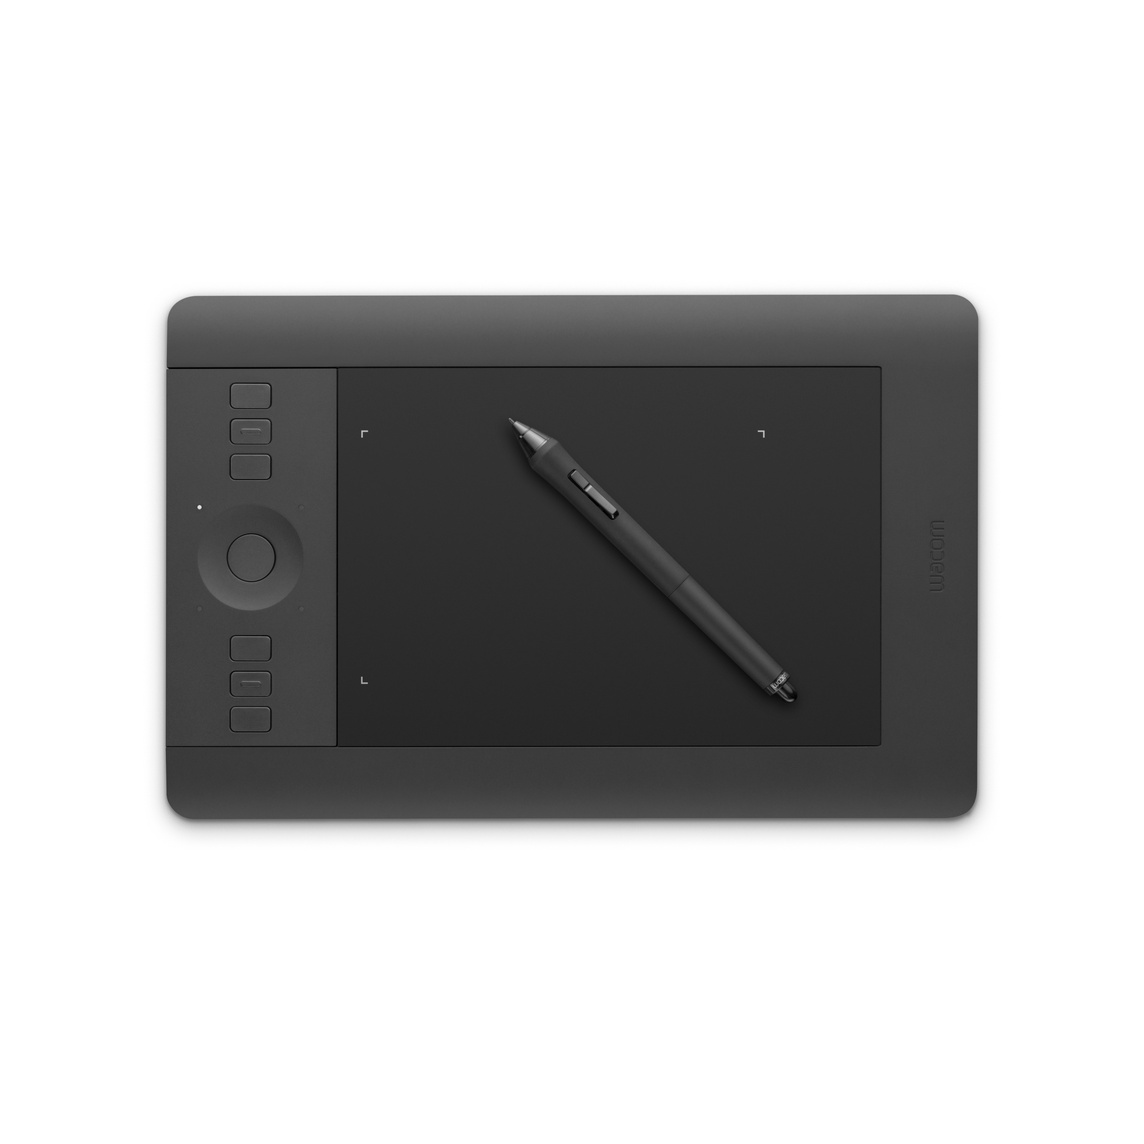 Wacom Intuos Pro Pen and Touch Tablet - Small